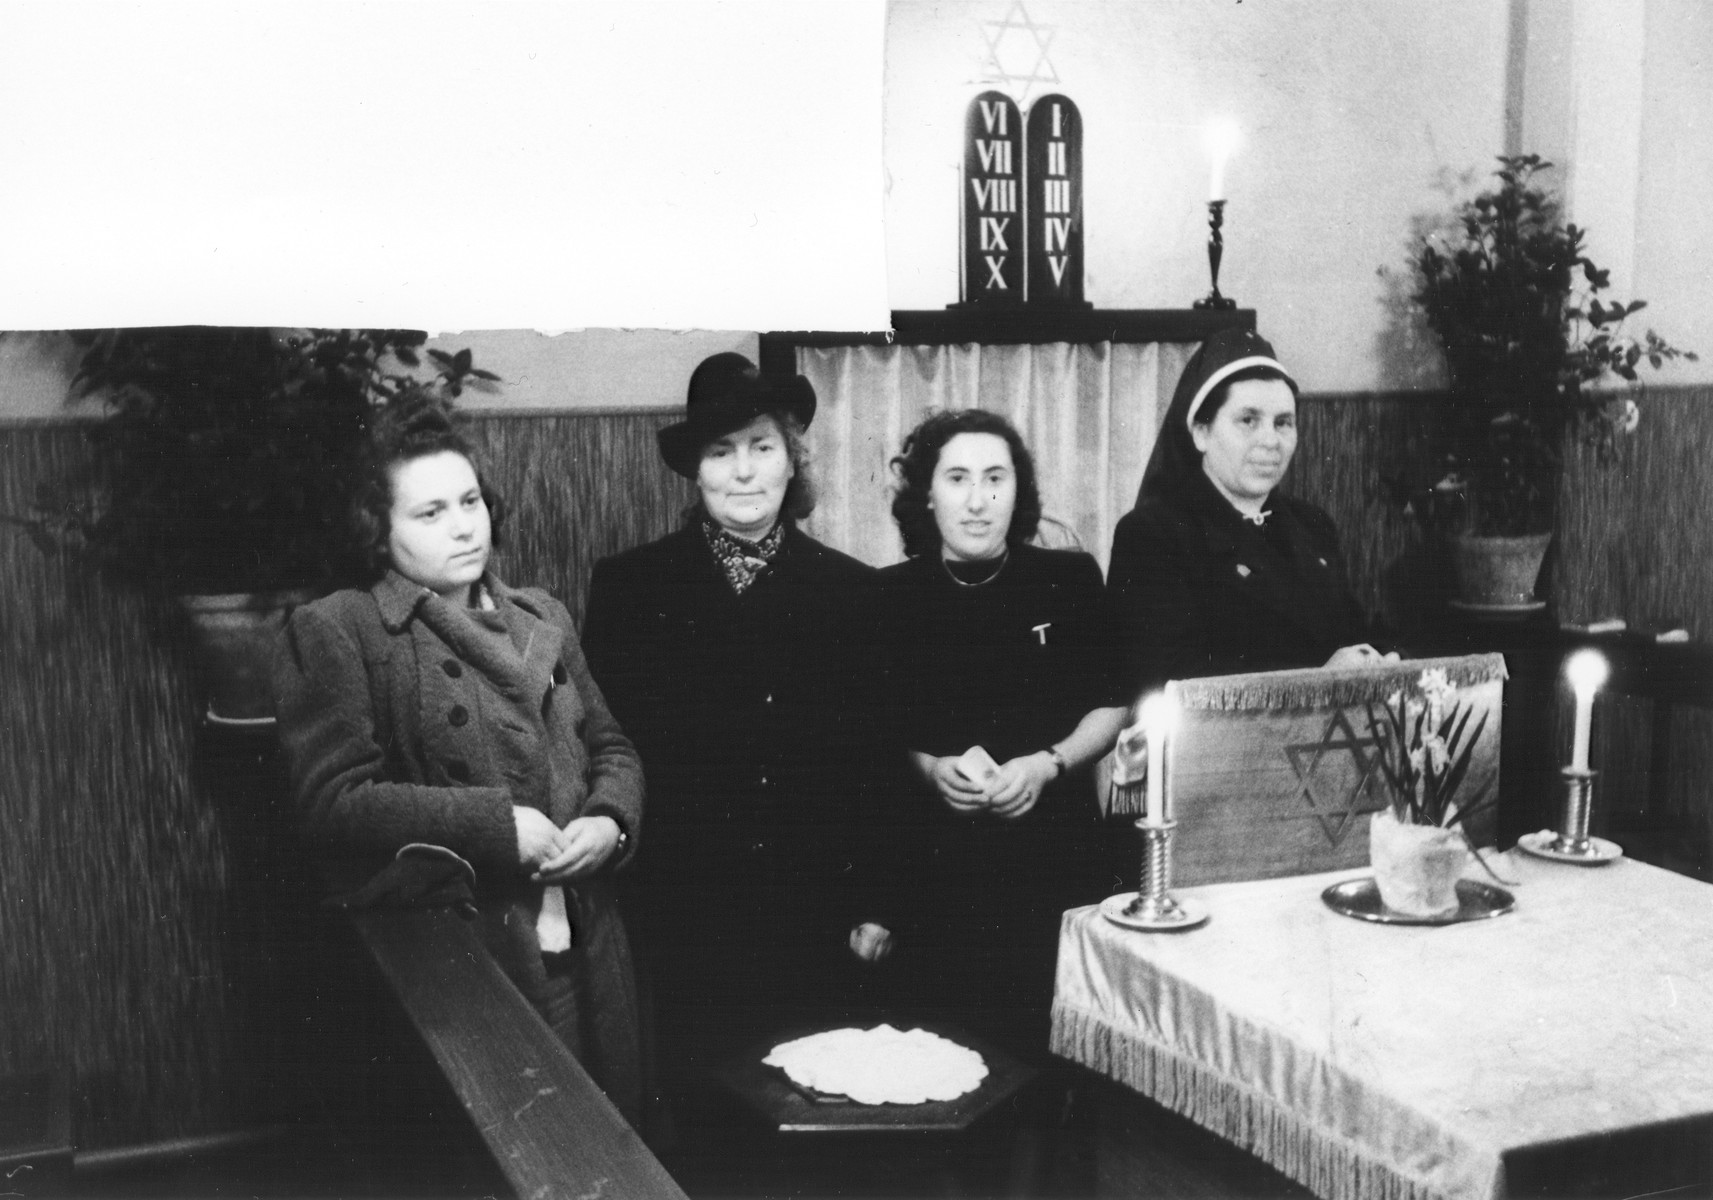 Four women sit in the chapel at U.S. Army 3rd Division headquarters in Bad Wildungen.  Pictured at the far right is Hilde Hammerschlag, a survivor from Bad Wildungen.